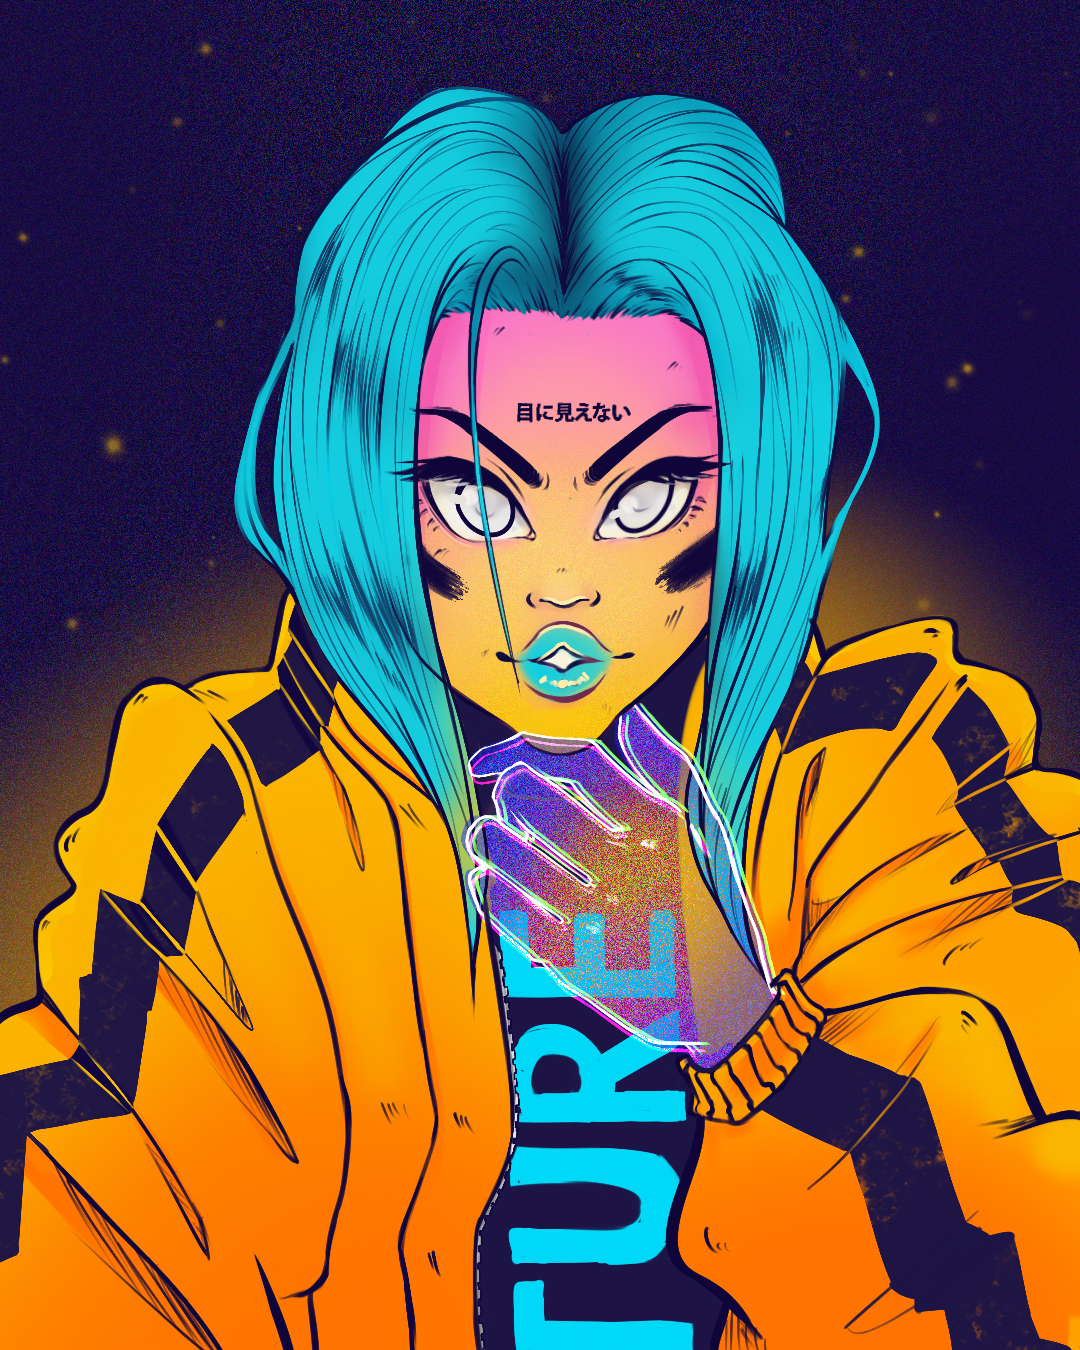 Draw This in Your Style by @artof